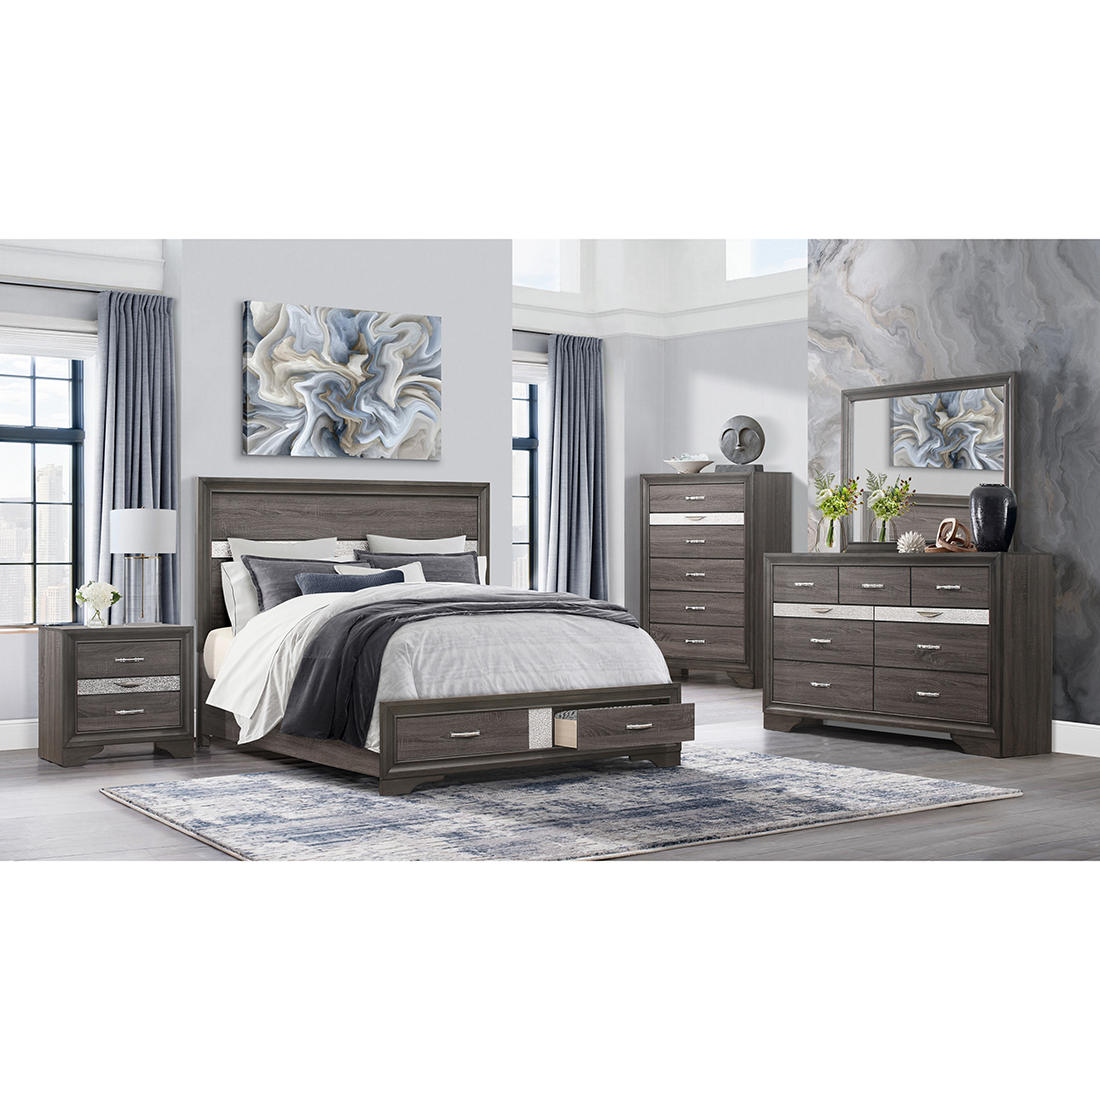 Global Furniture Seville Queen Bedroom Collection With White Glove Delivery Bjs Wholesale Club